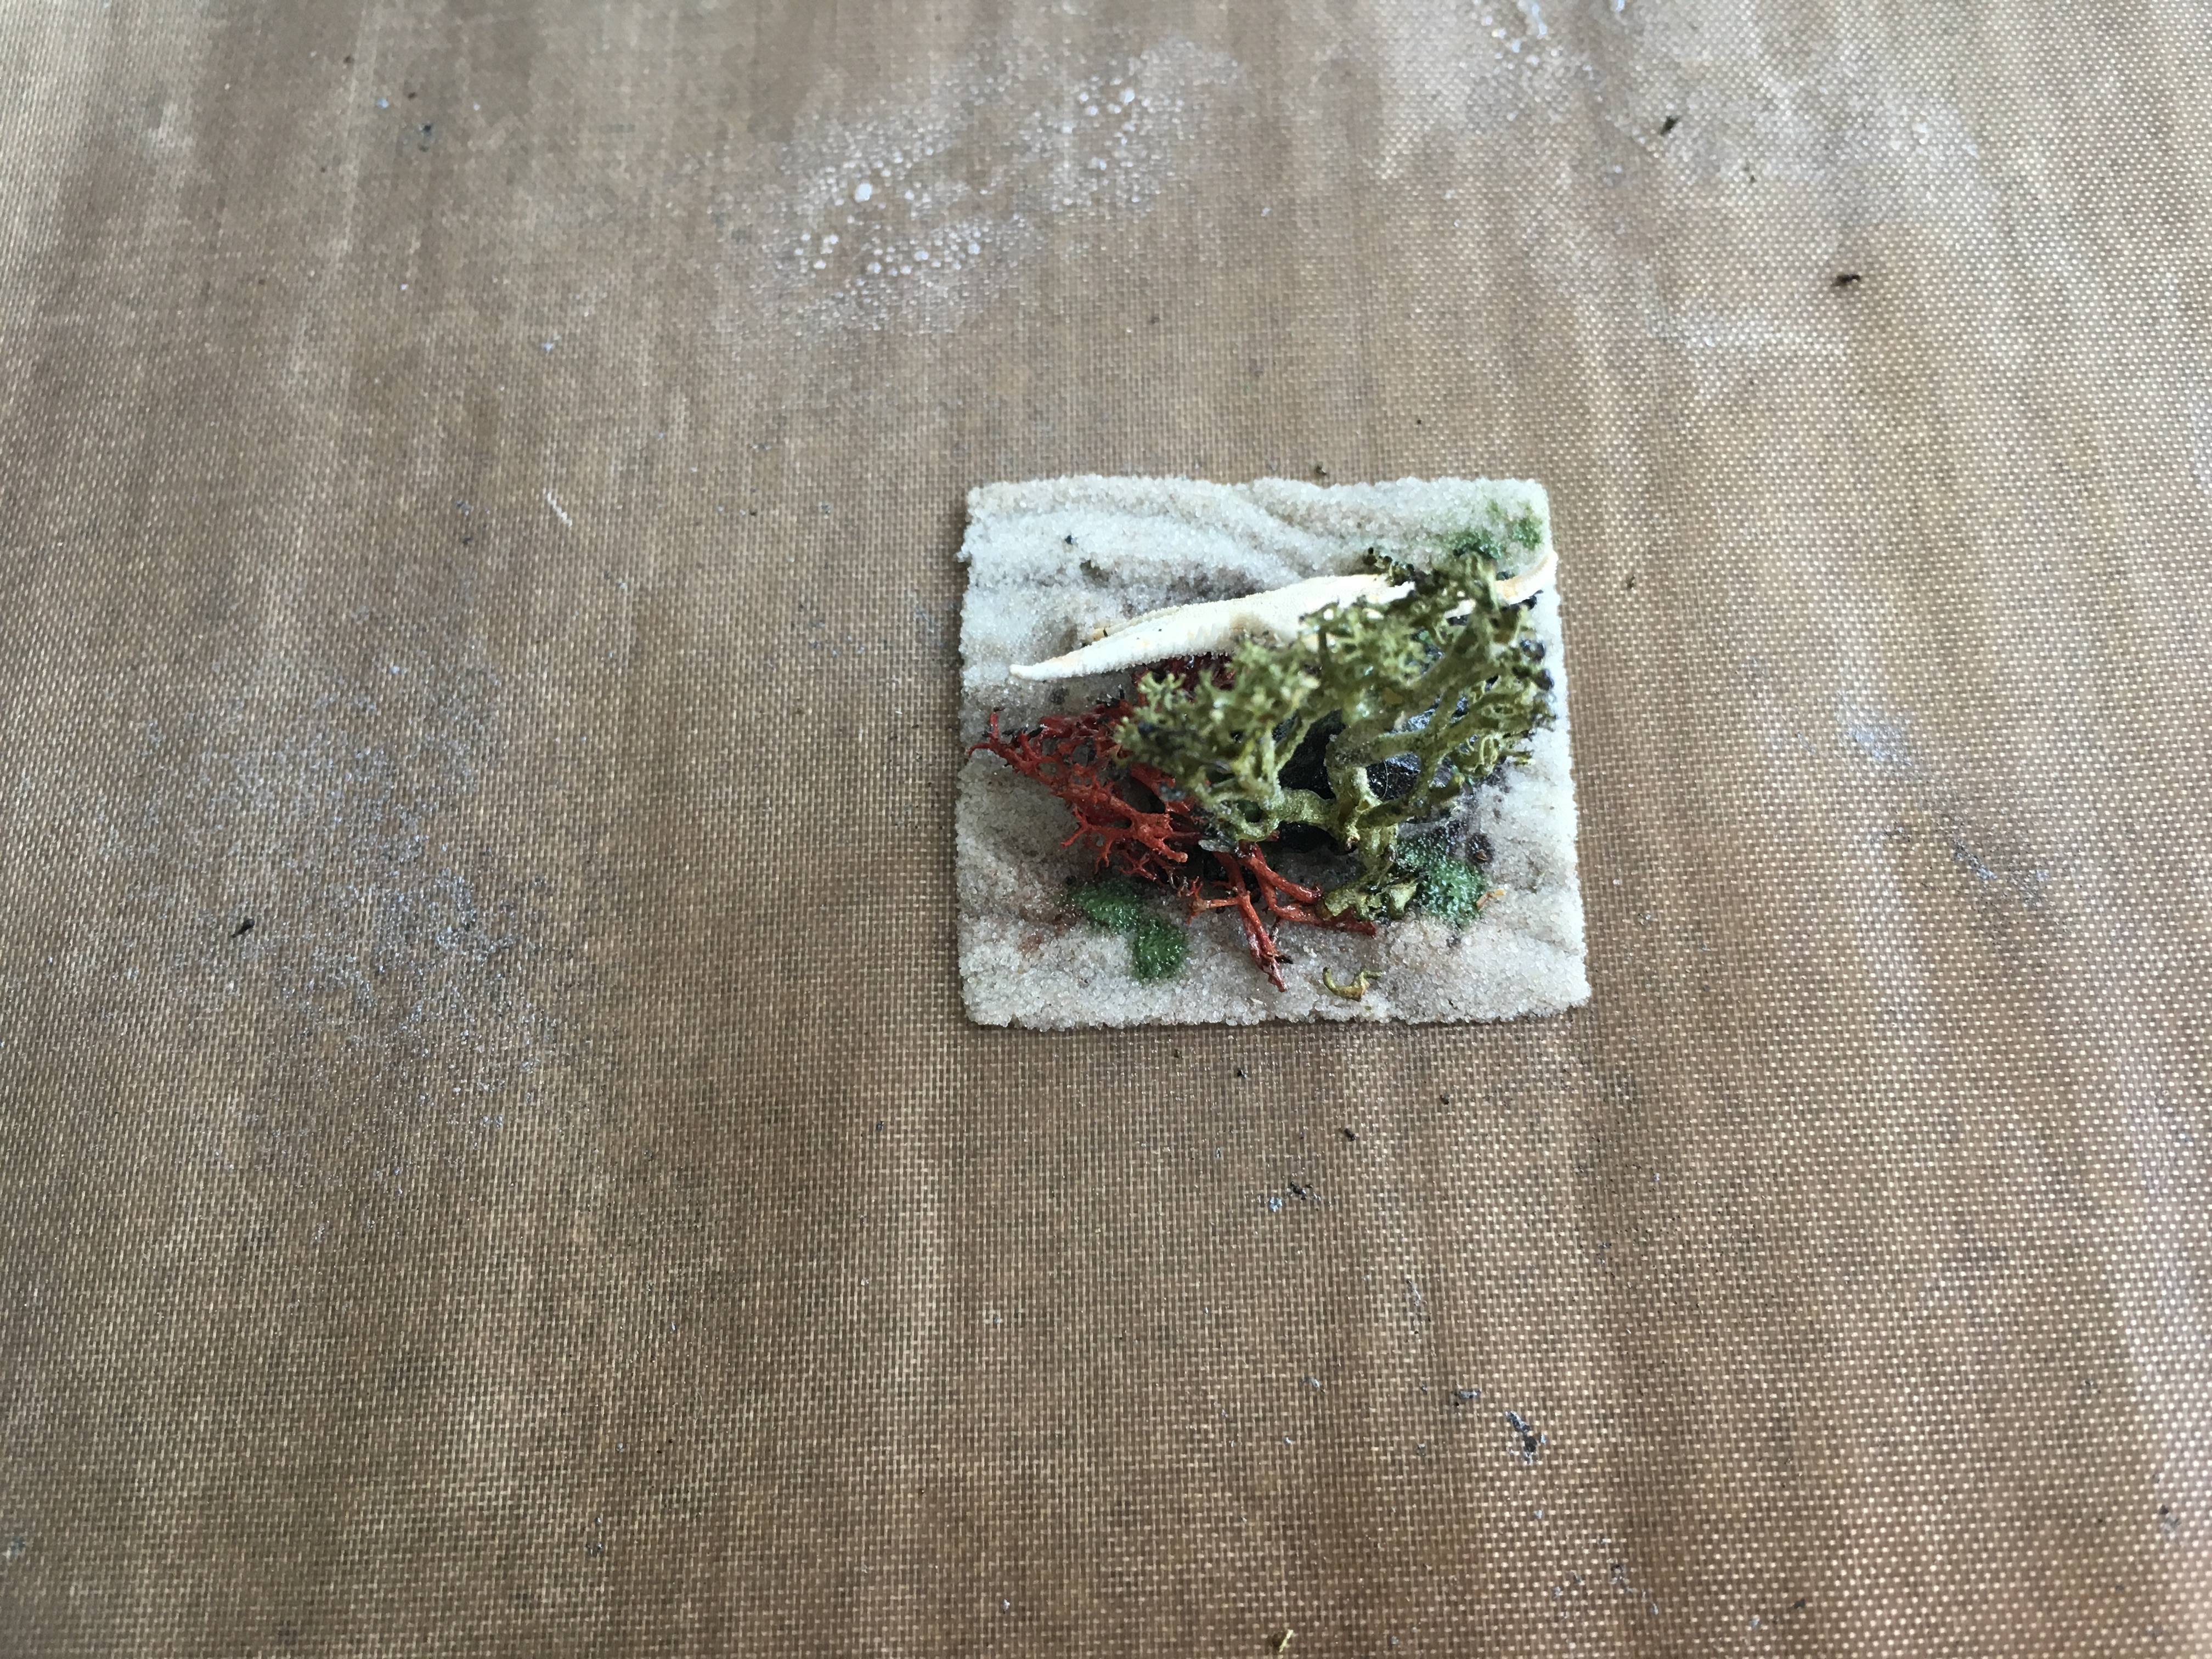 Picture of Casting in Resin